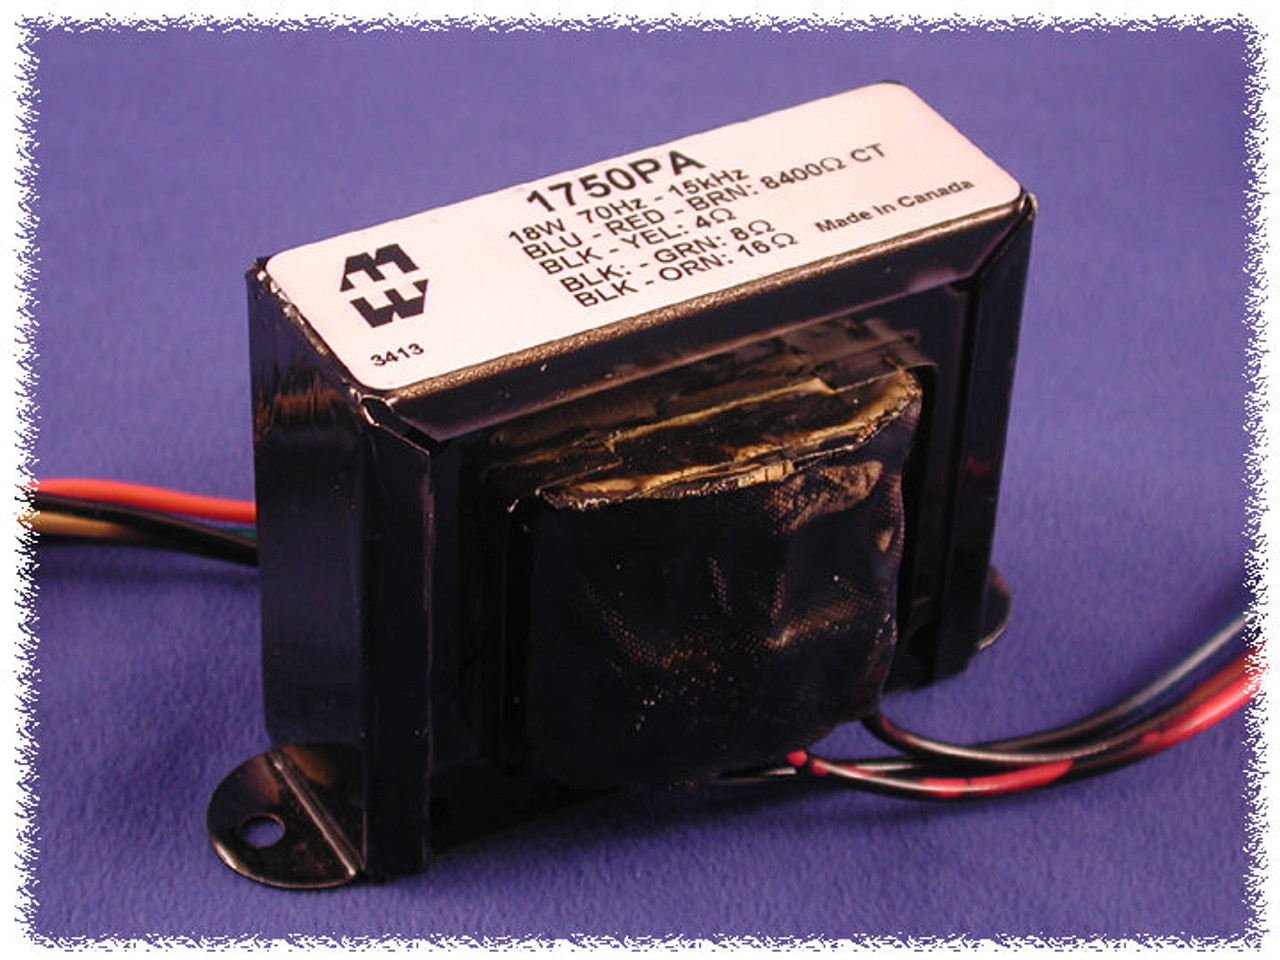 Hammond 1750PA - Output Transformer